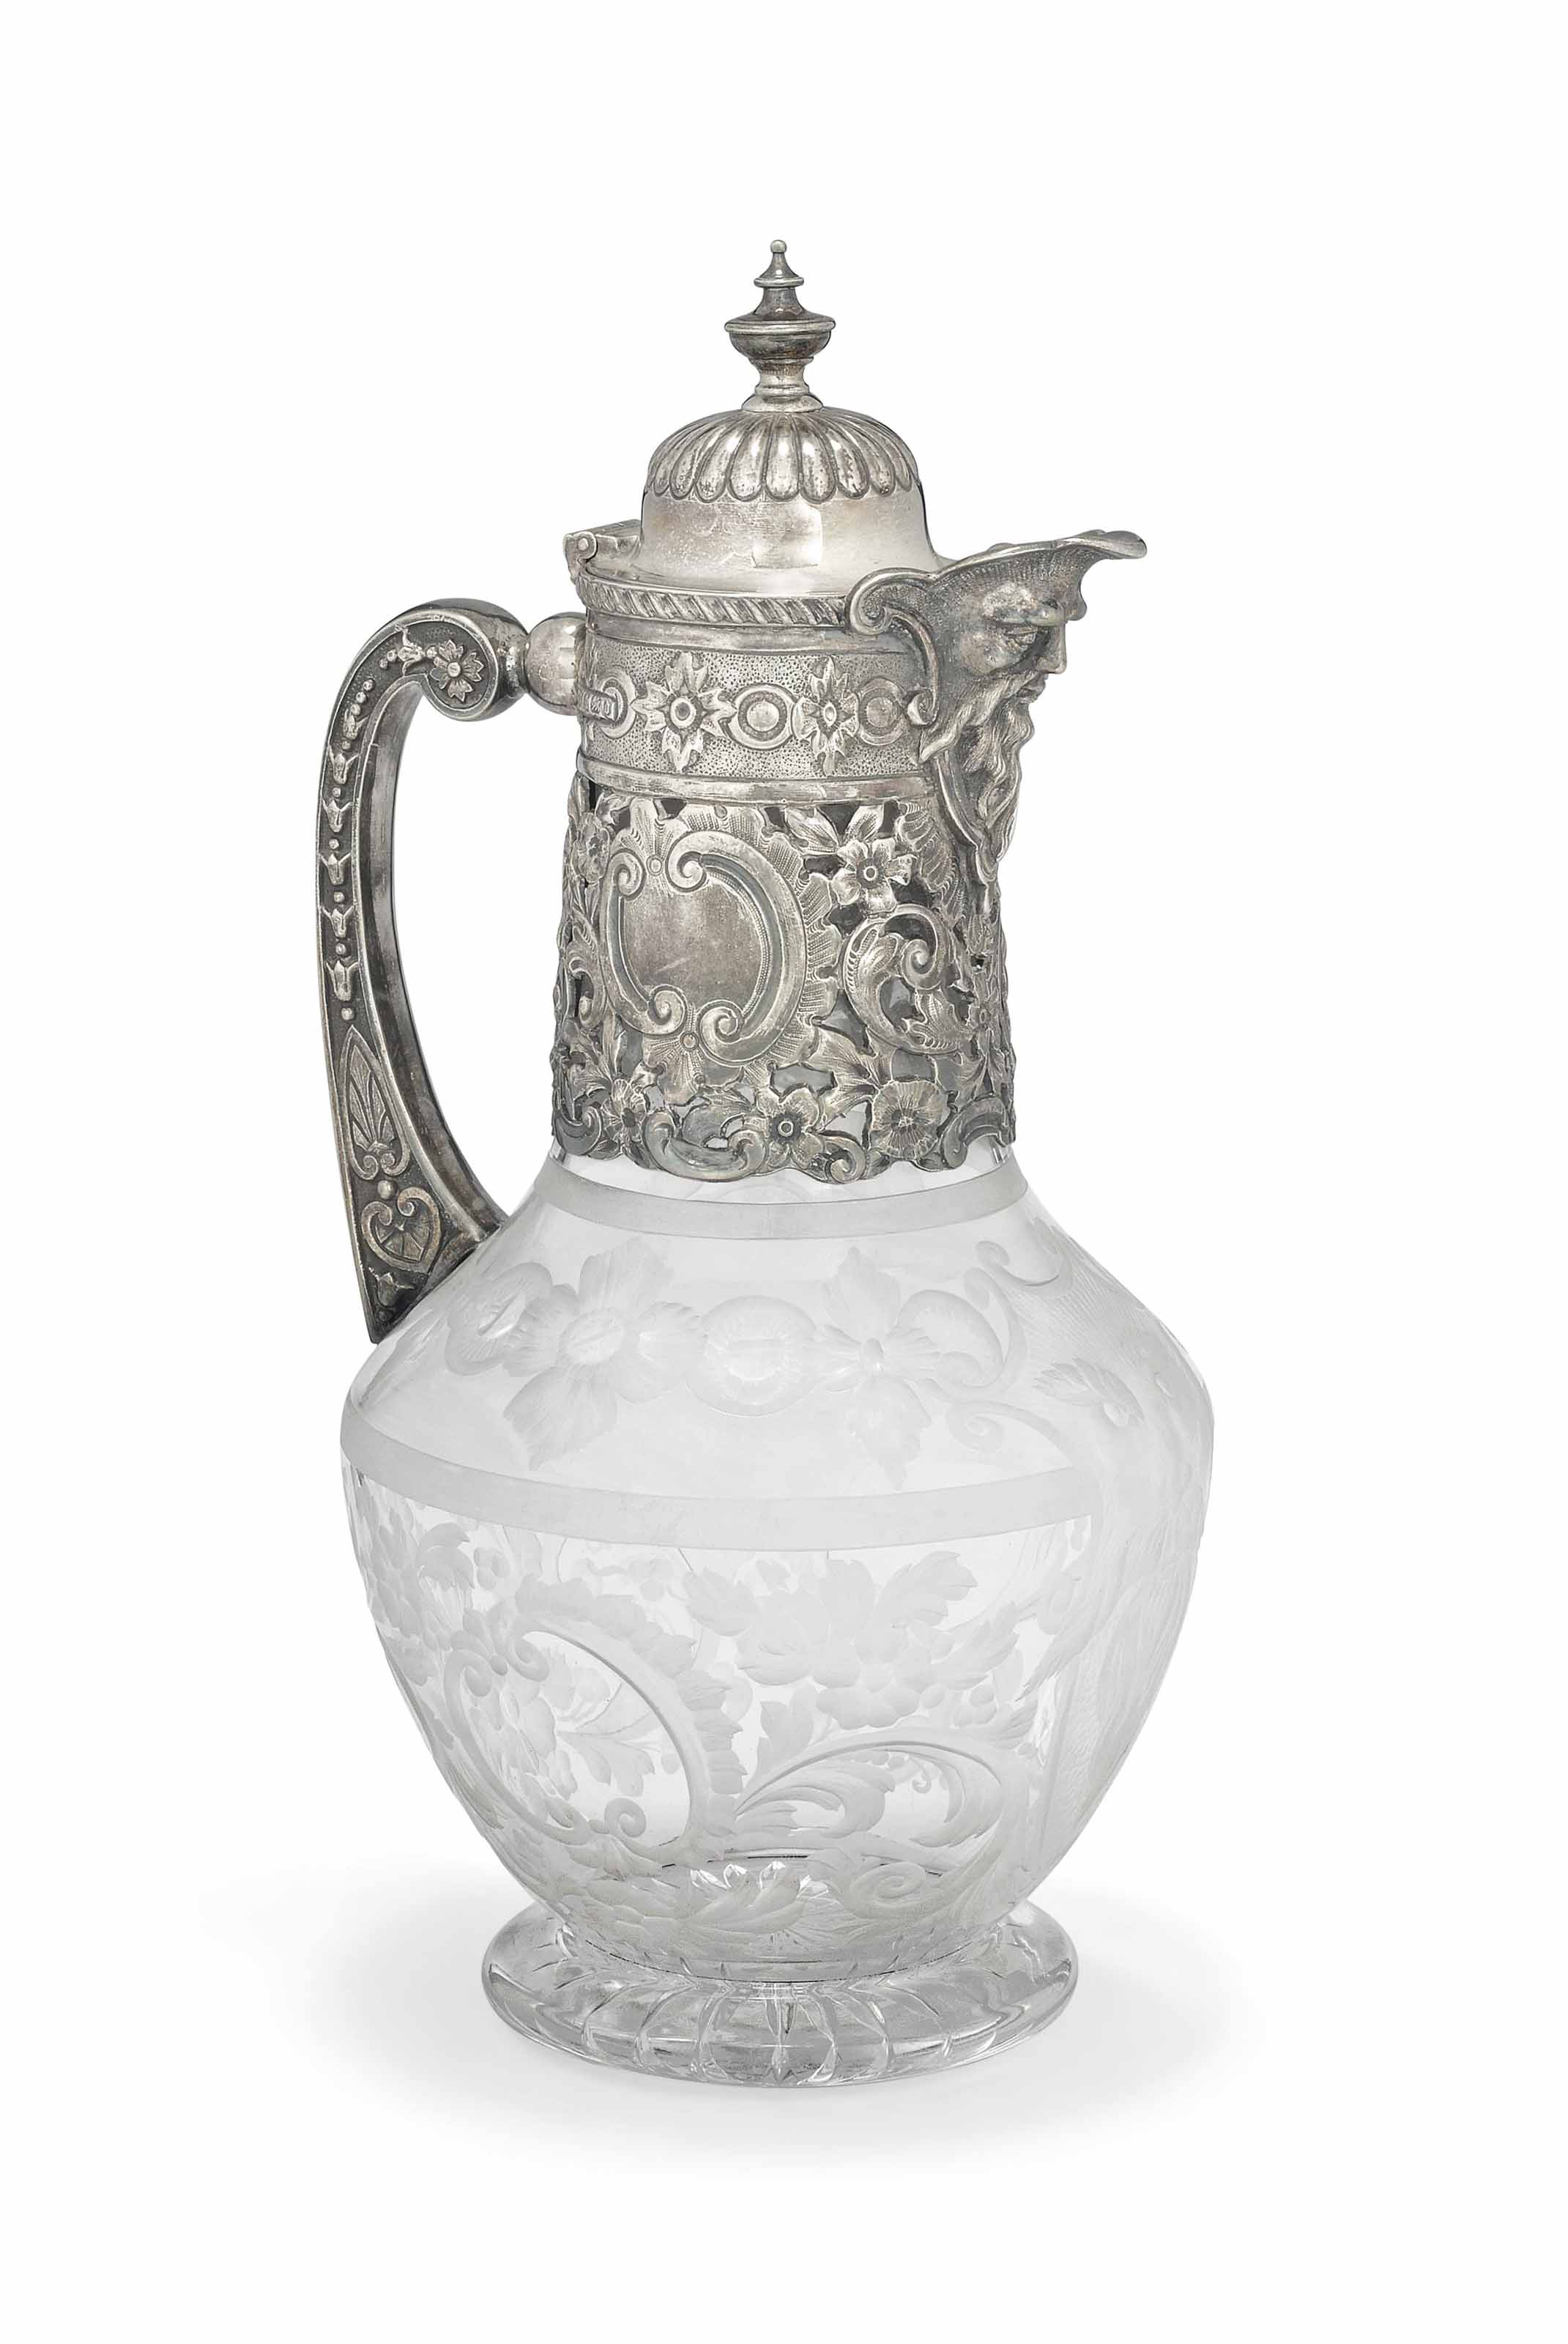 A LATE VICTORIAN SILVER-MOUNTED CLARET JUG